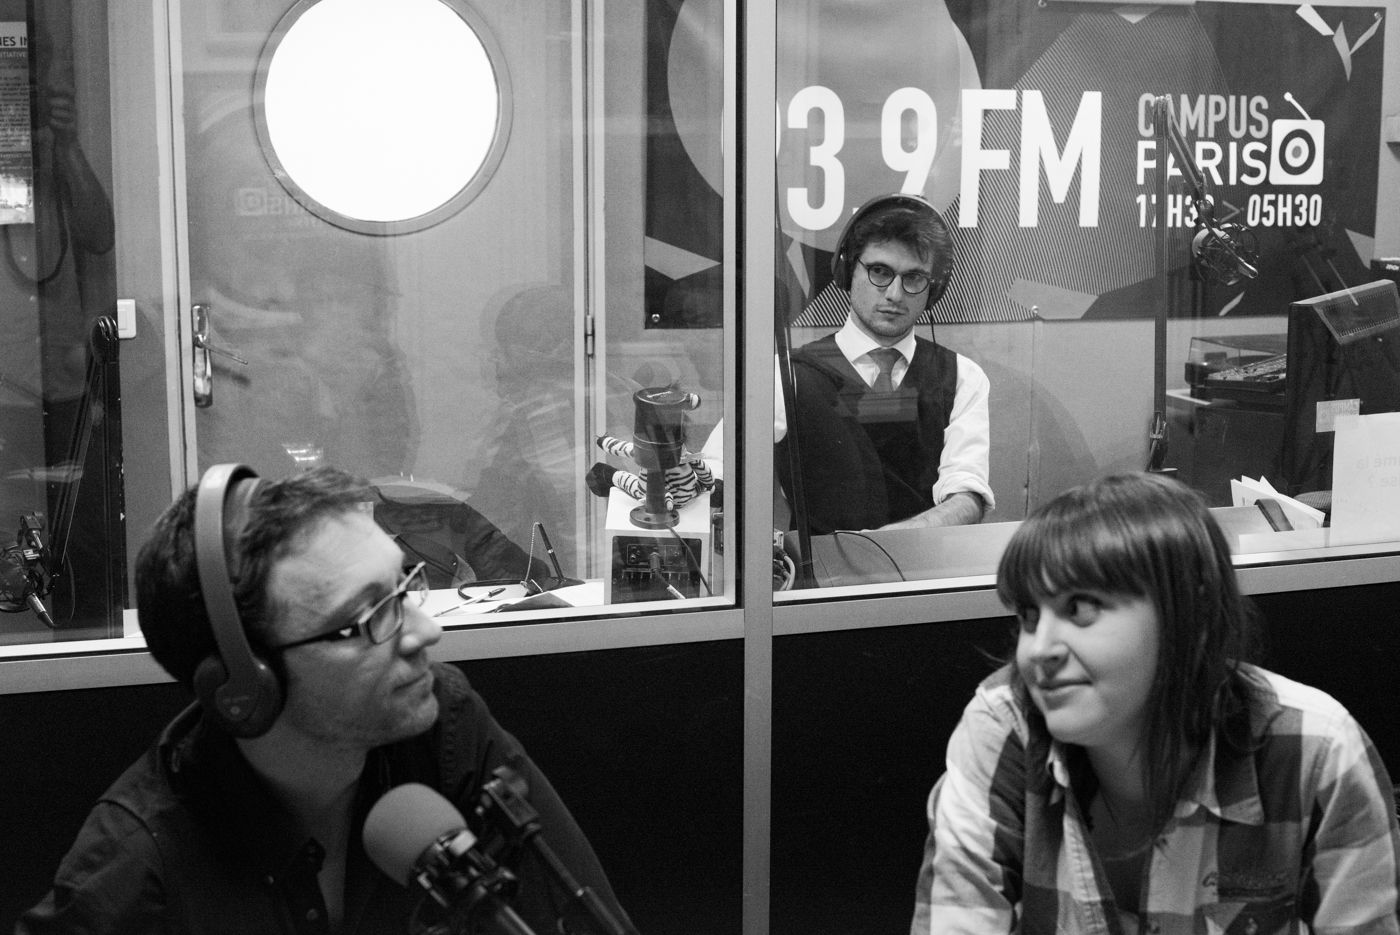 2012-11-07-Radio_campus_Paris_2.jpg